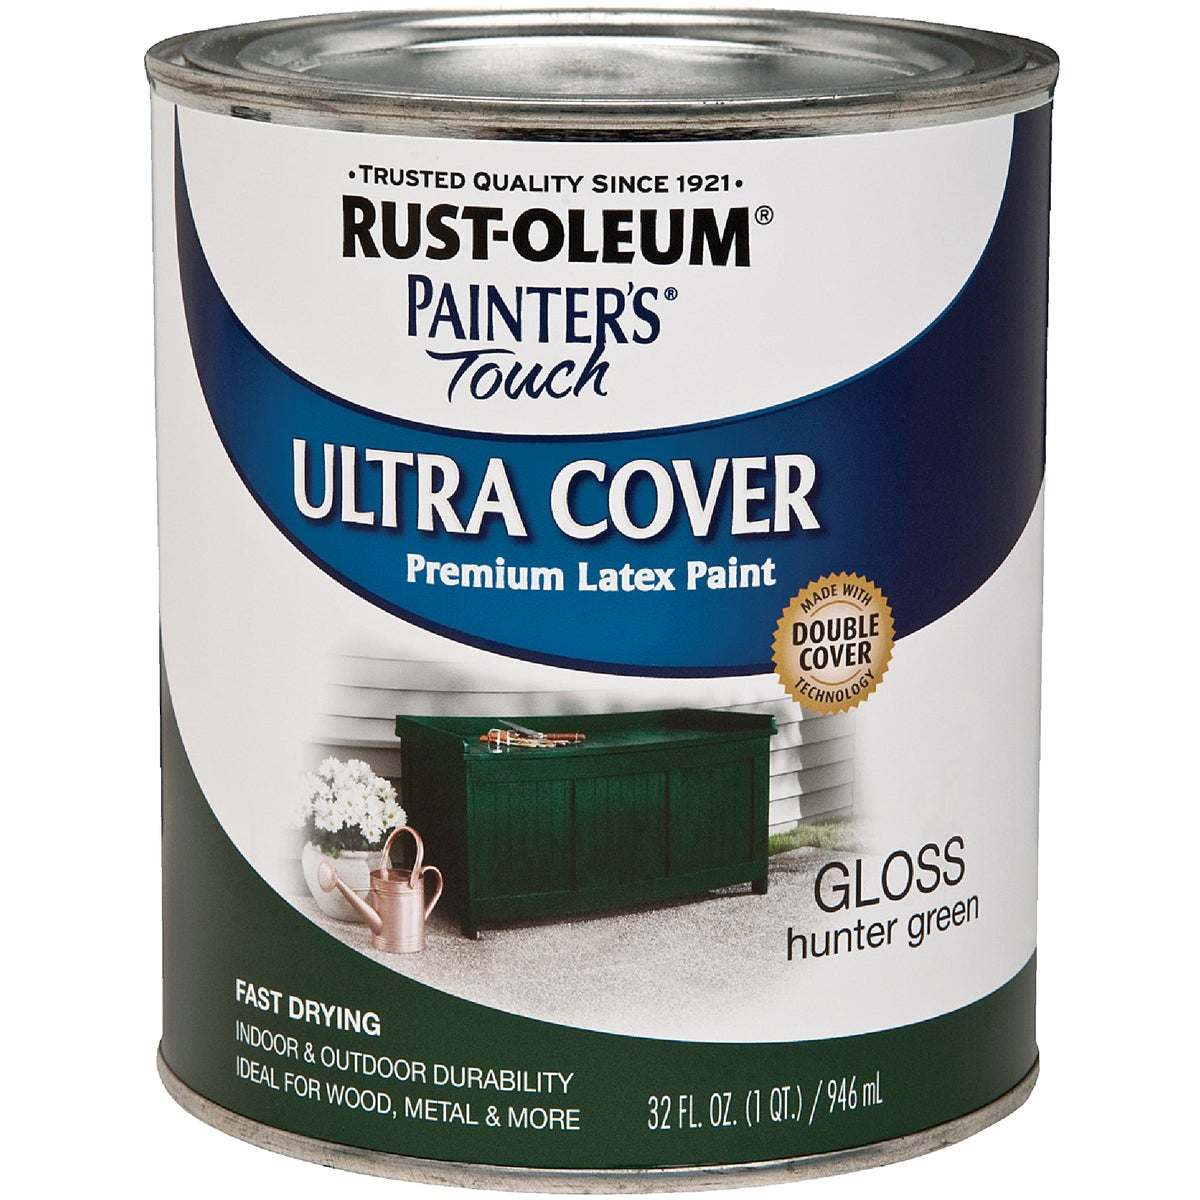 HUNTER GREEN LATEX PAINT - 1938-502 by Rustoleum